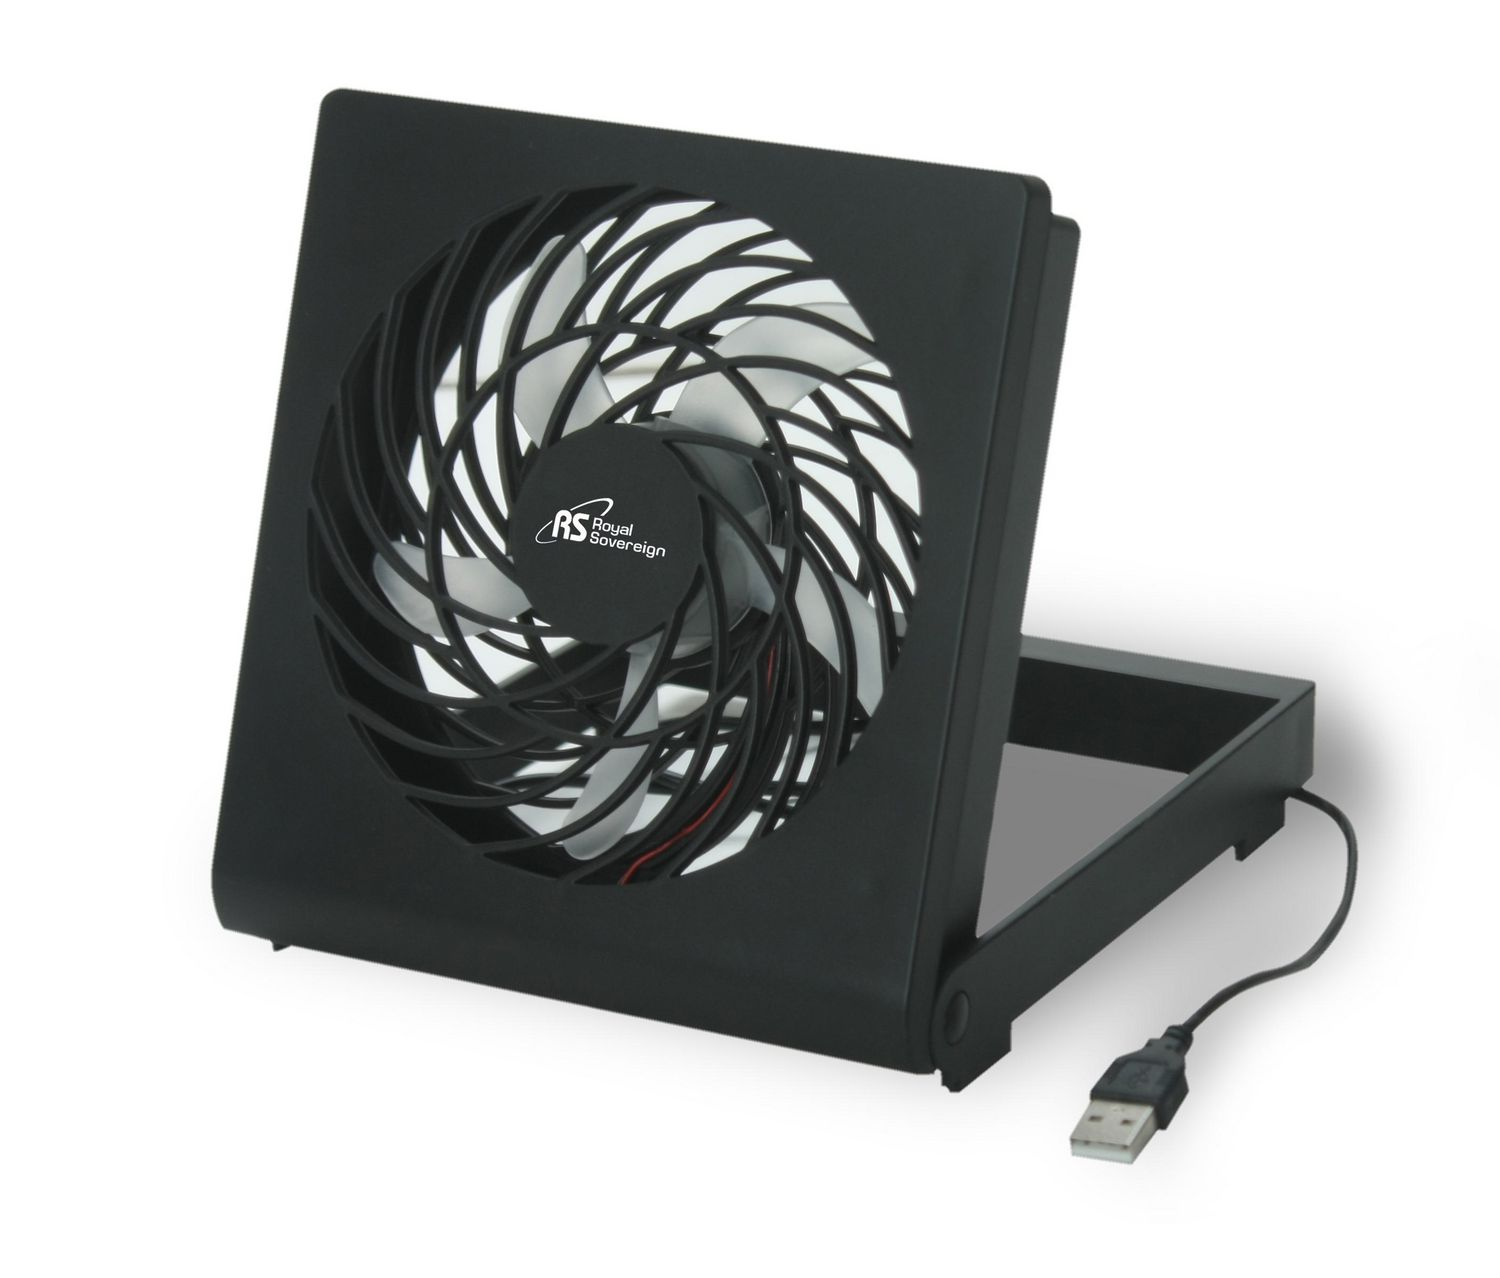 Magasin Ventilateur Ventilateur Usb Personnel De Royal Sovereign